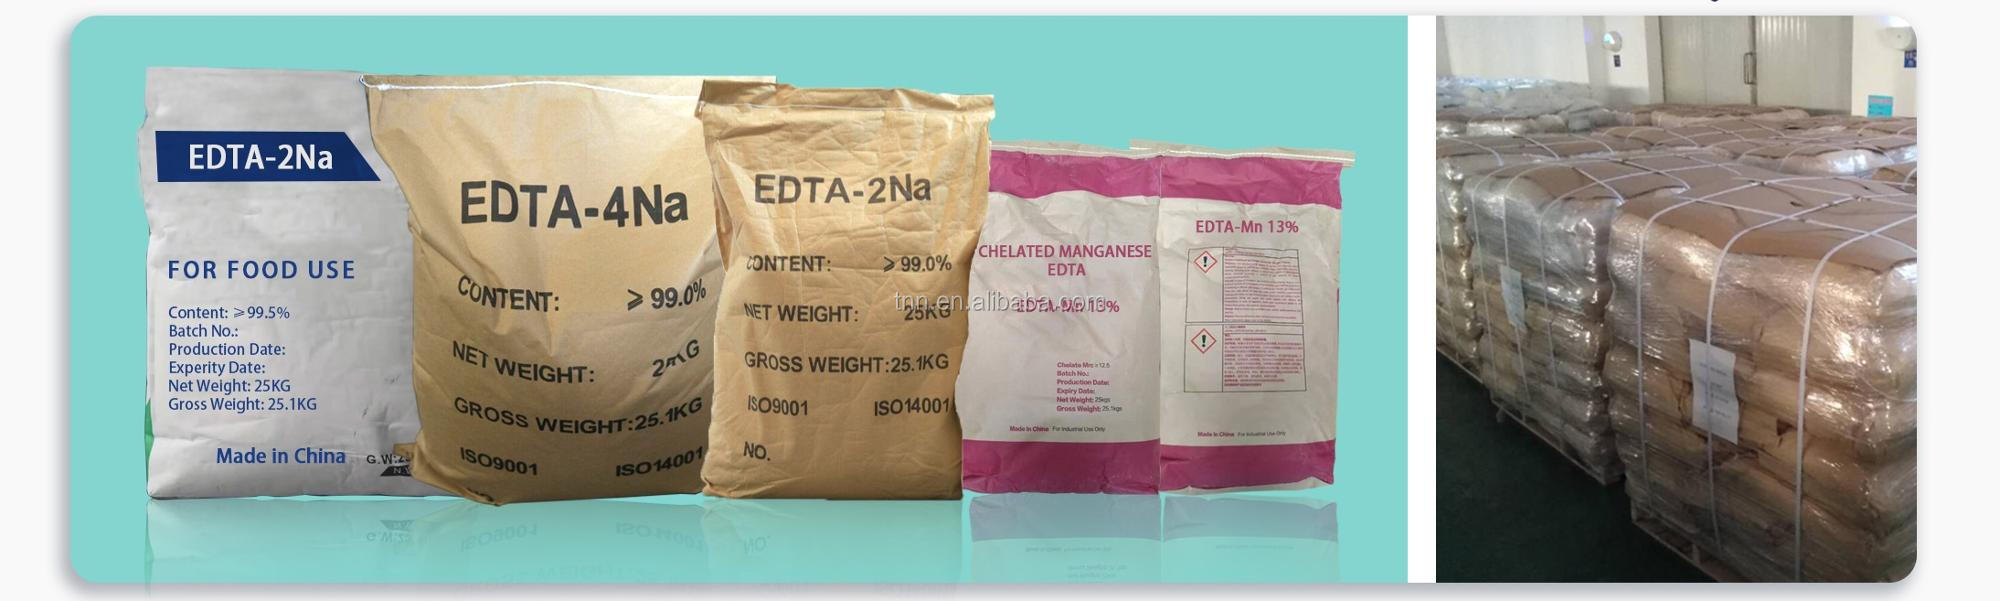 EDTA packages